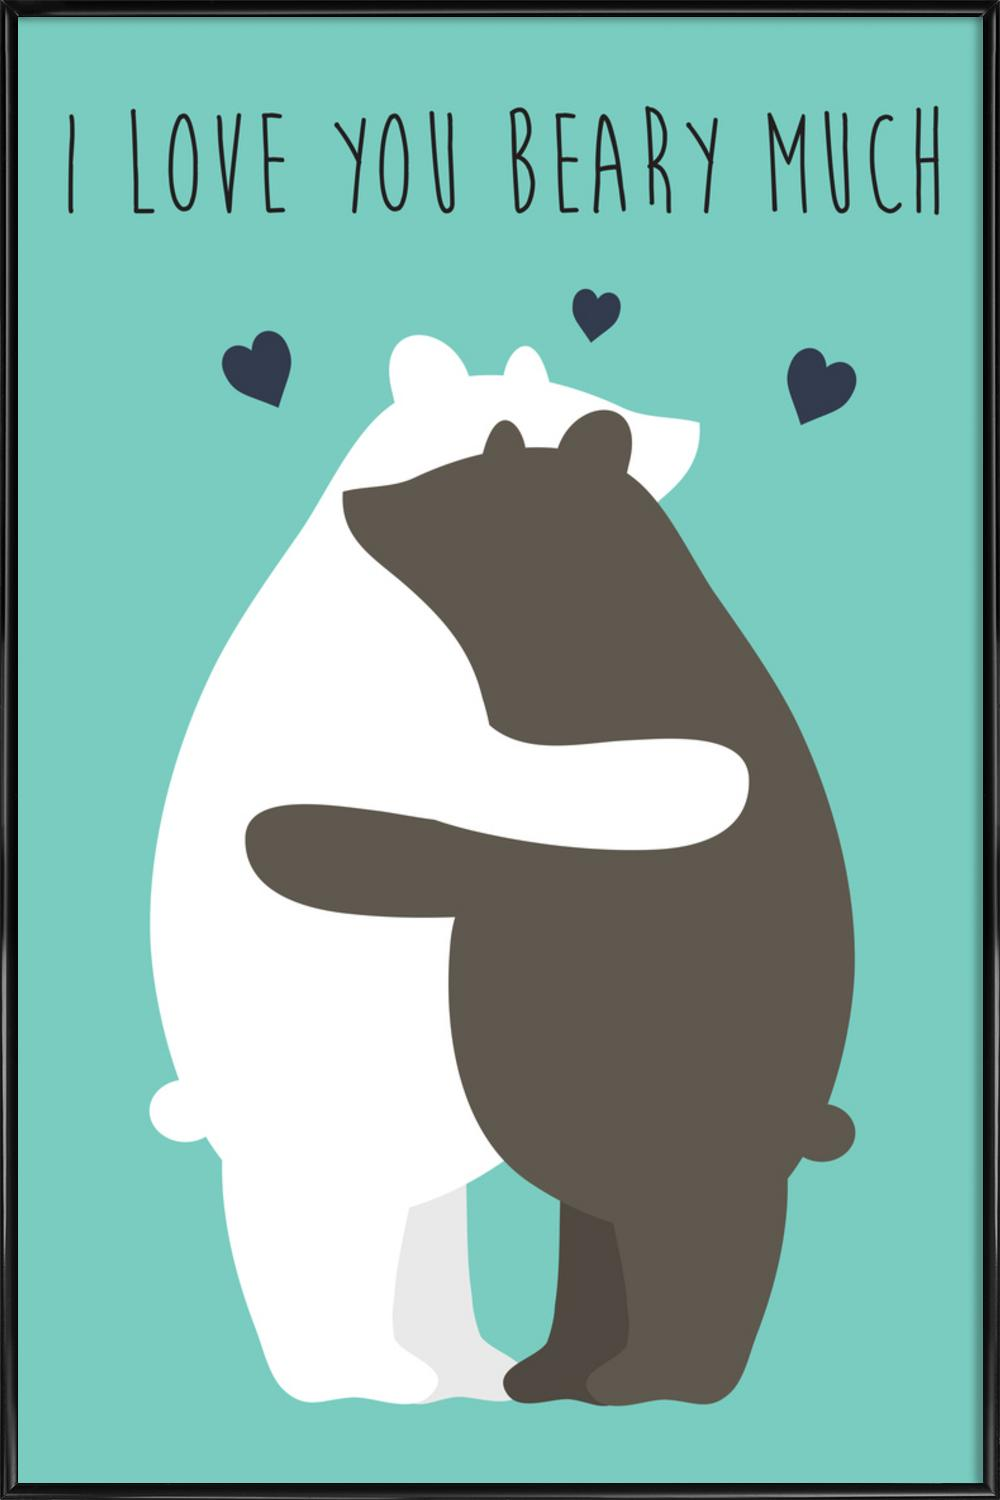 I Love You Beary Much — Bed Linen